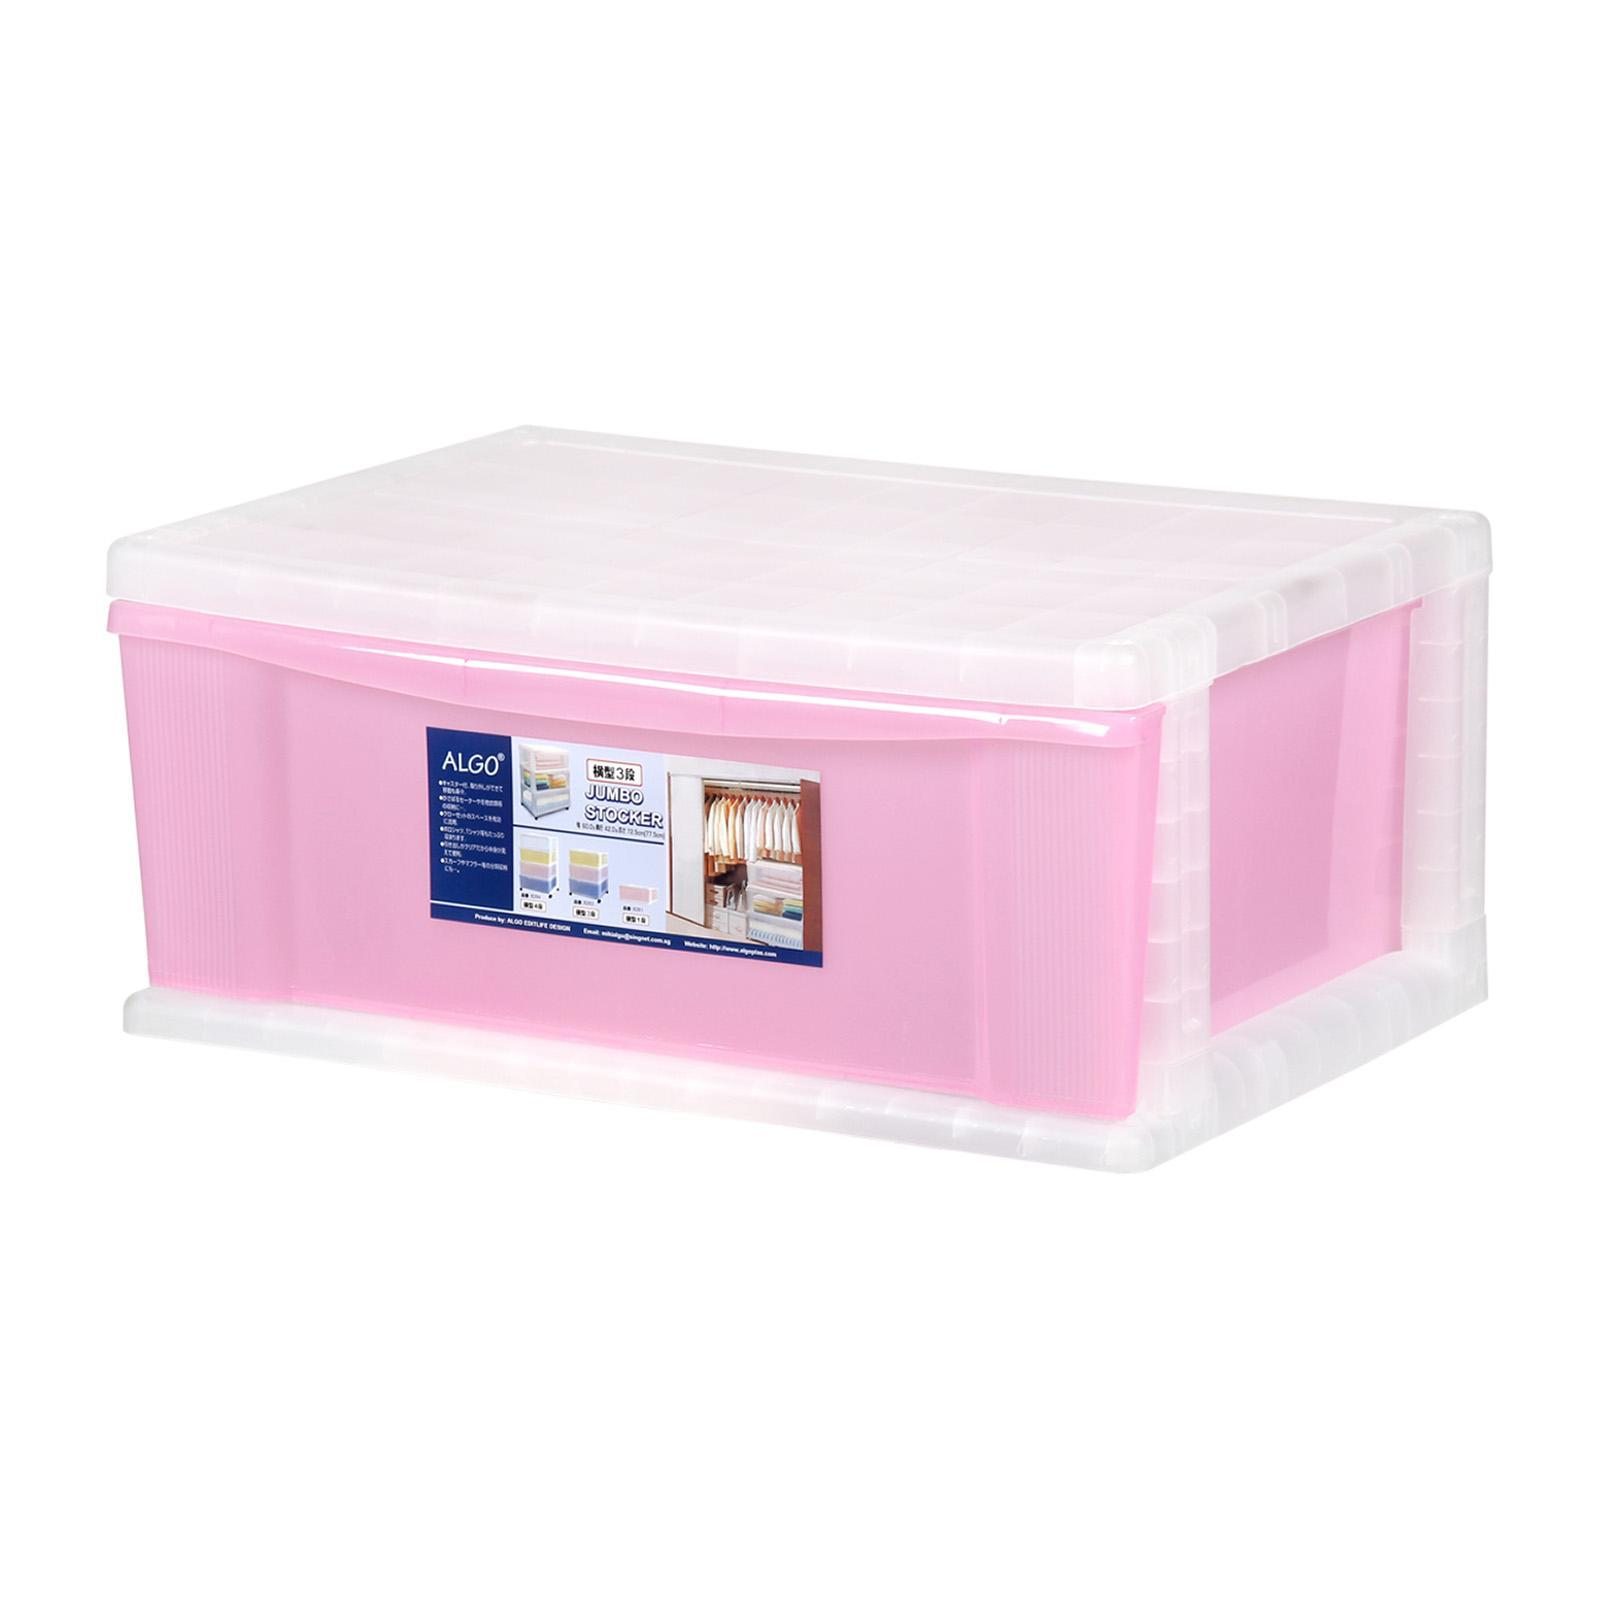 ALGO Jumbo Stocker Single Pink